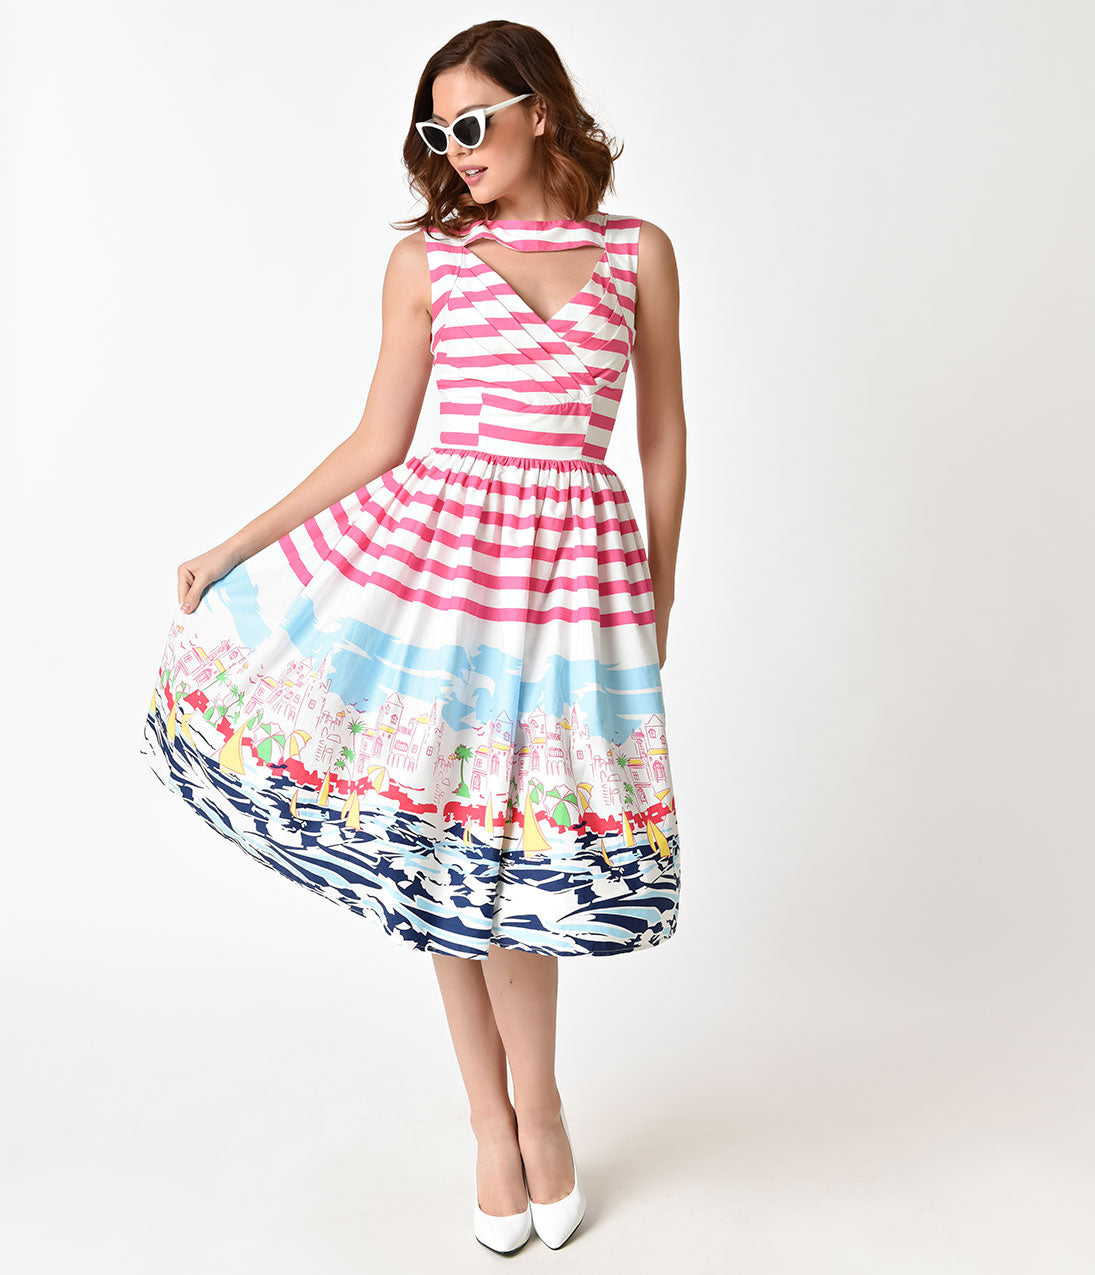 Pin Up Dresses | Pin Up Clothing Unique Vintage 1950S Style Pink Stripe Seaside Sleeveless Shelly Swing Dress $98.00 AT vintagedancer.com